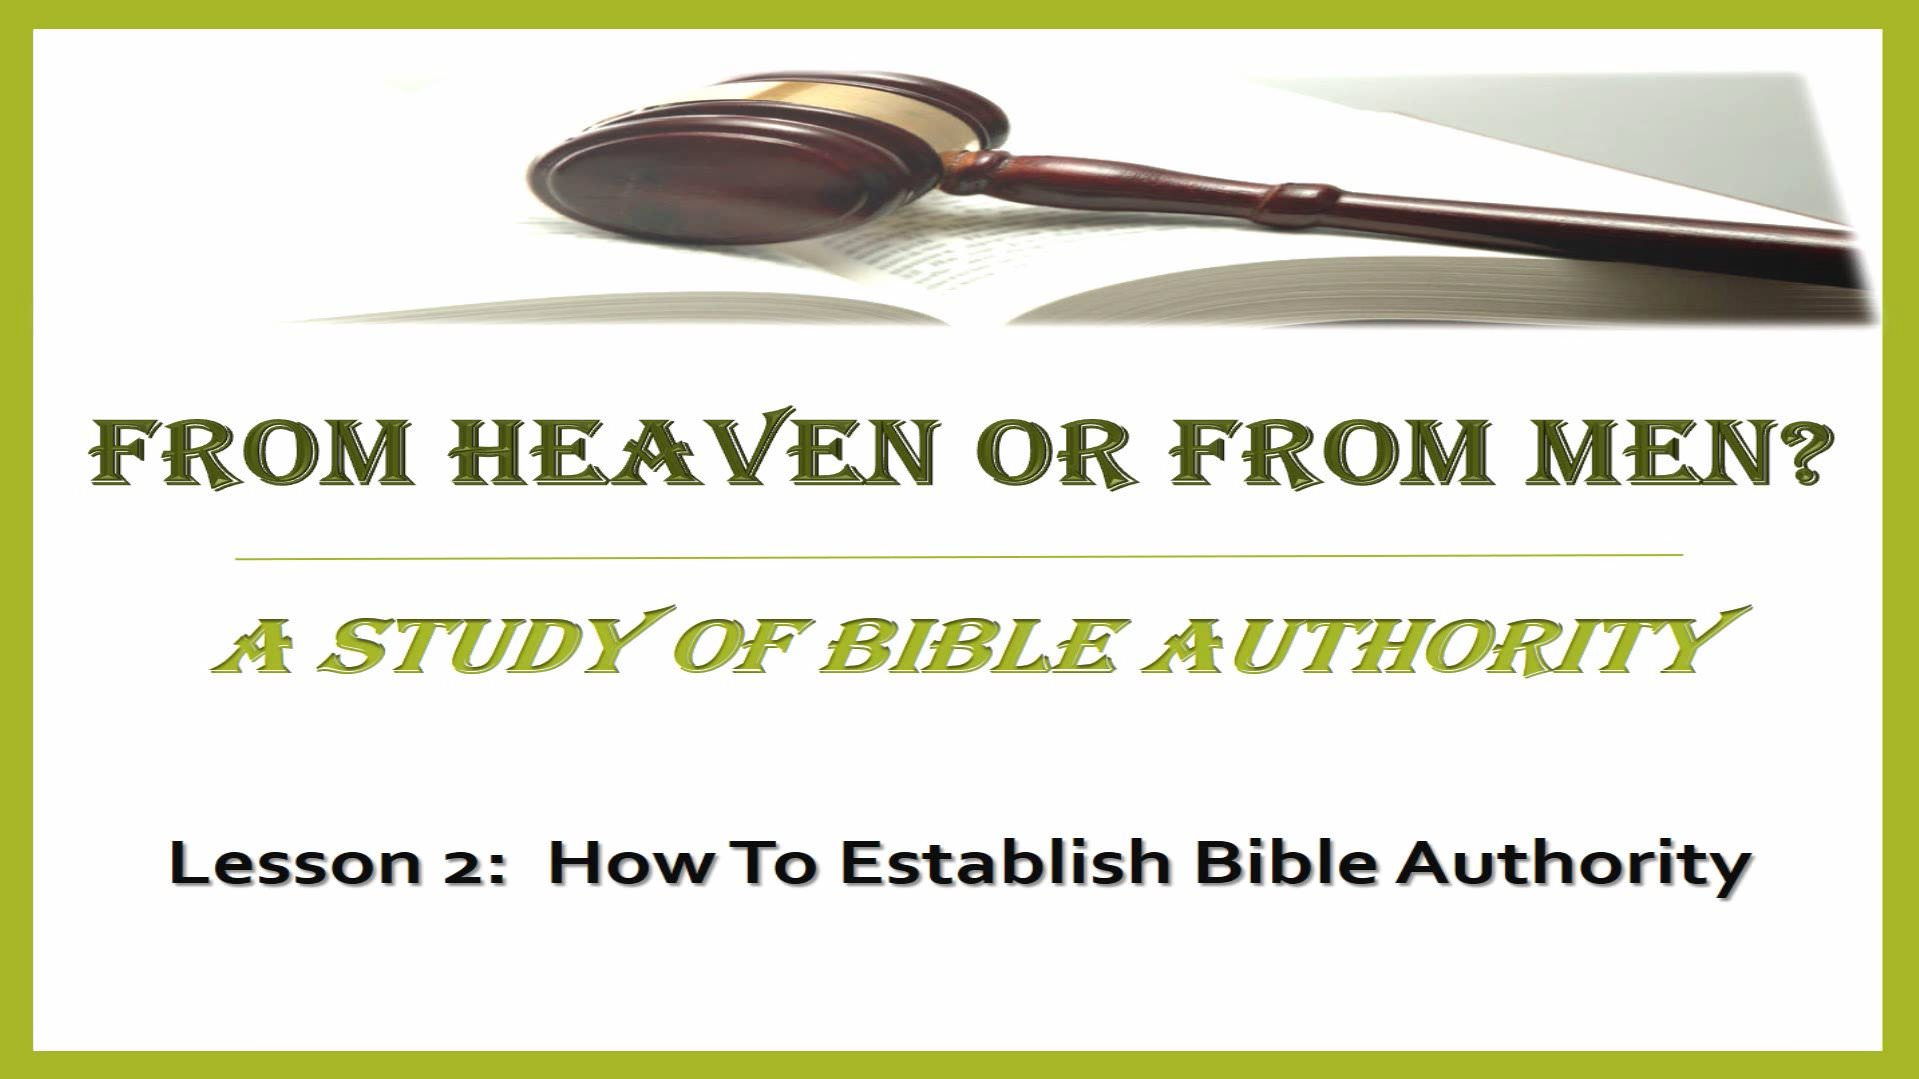 From Heaven Or From Men? (Lesson 2:  How To Establish Bible Authority)